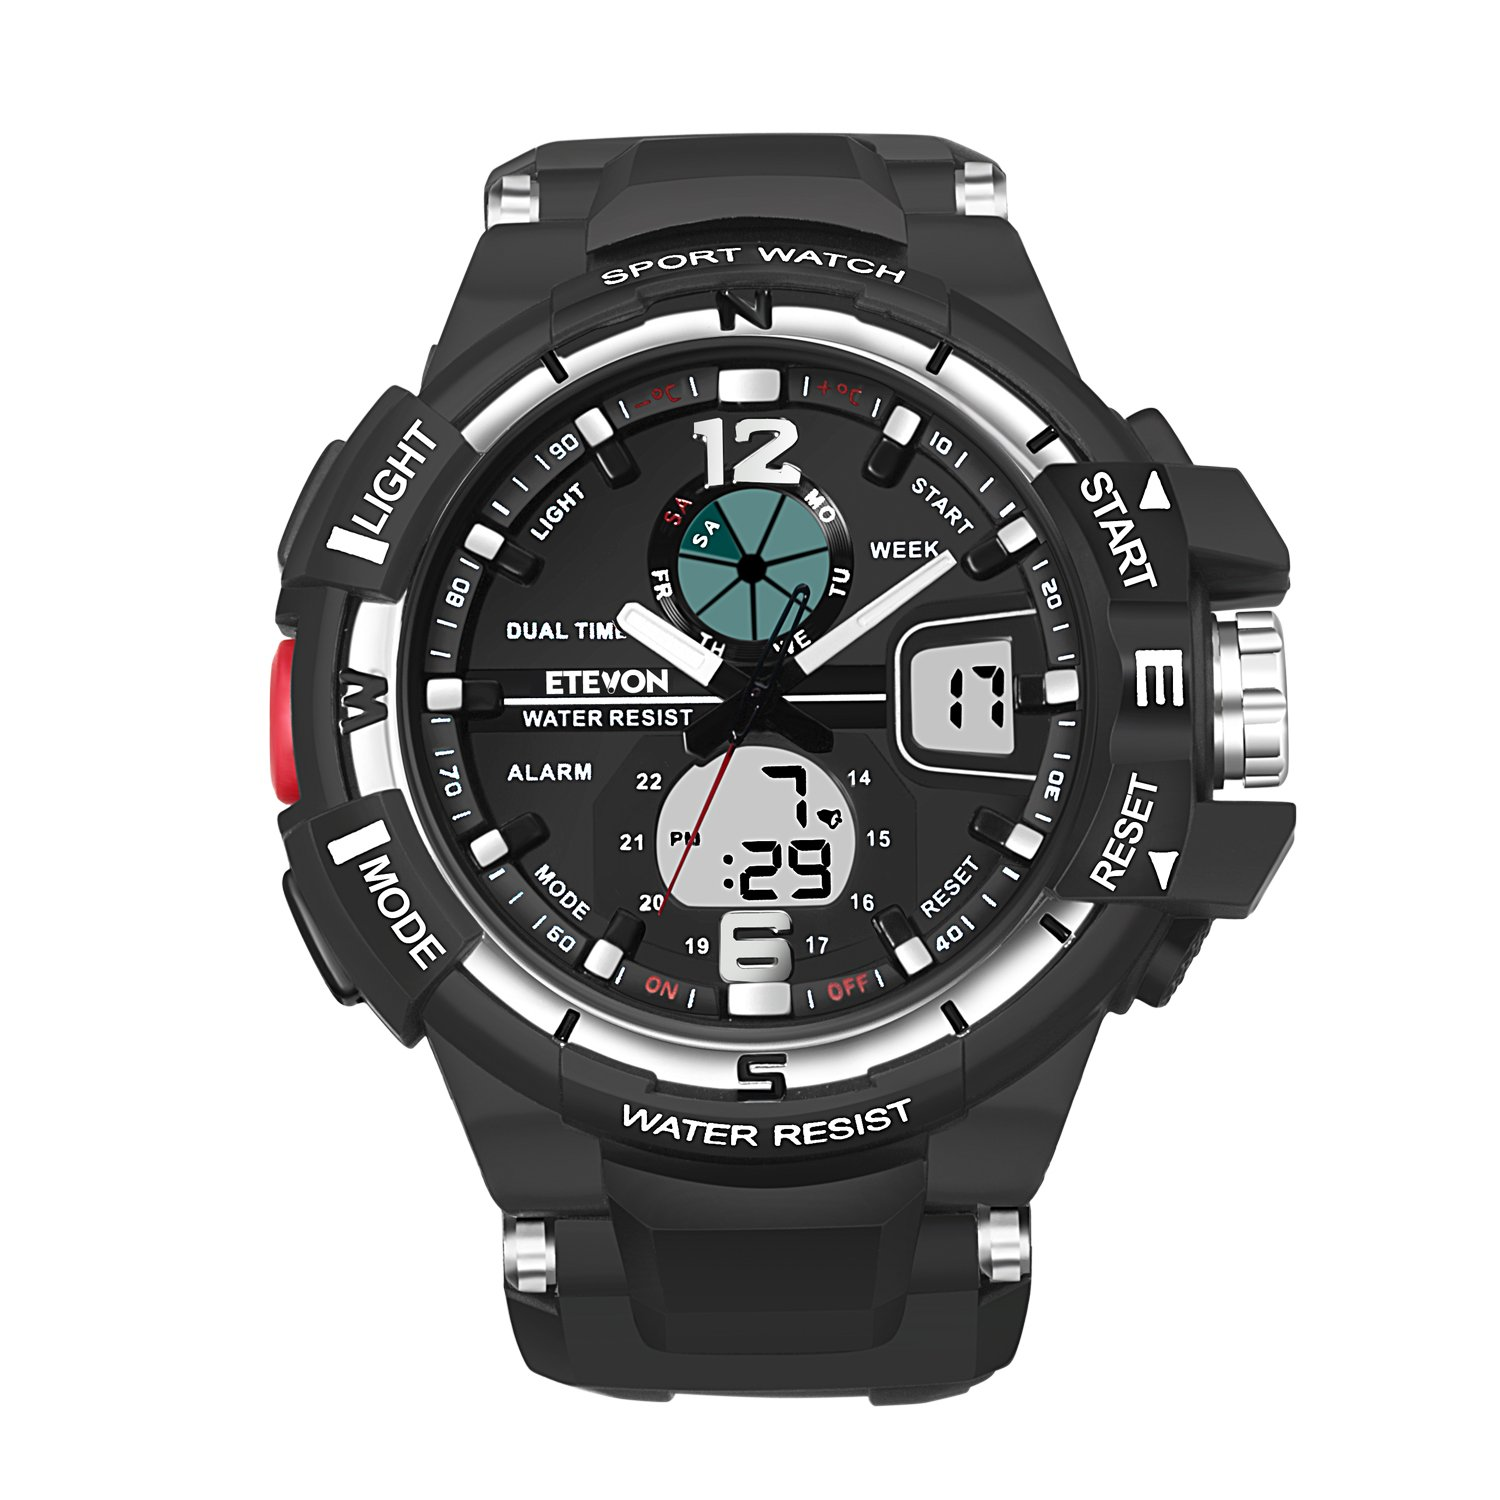 ETEVON Men's 'Galaxy' Fashion Analog Digital Wrist Watch with Double Buckles - EL Back Light - Two Time Zone - 30m Water Resistant - Imported Movement, Stylish Outdoor Sport Watches for Men - Black